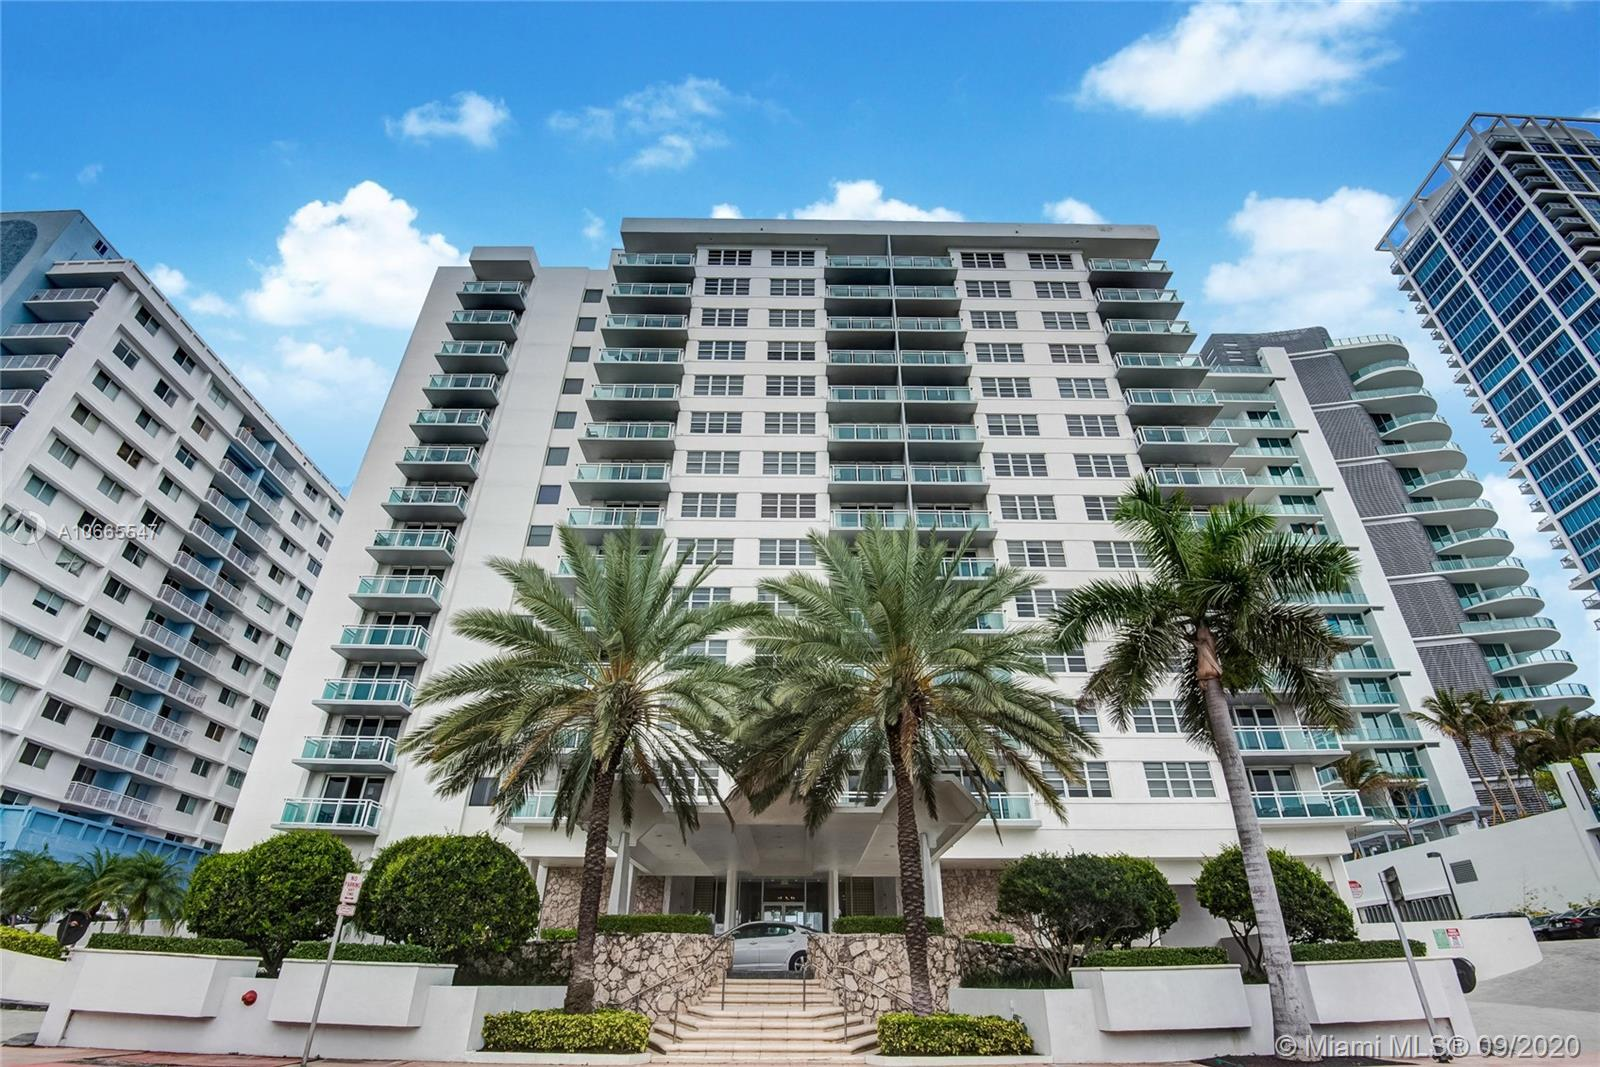 Beautiful 2/2 corner unit at The Collins in Miami Beach. Enjoy views of the lively Collins Ave, peop